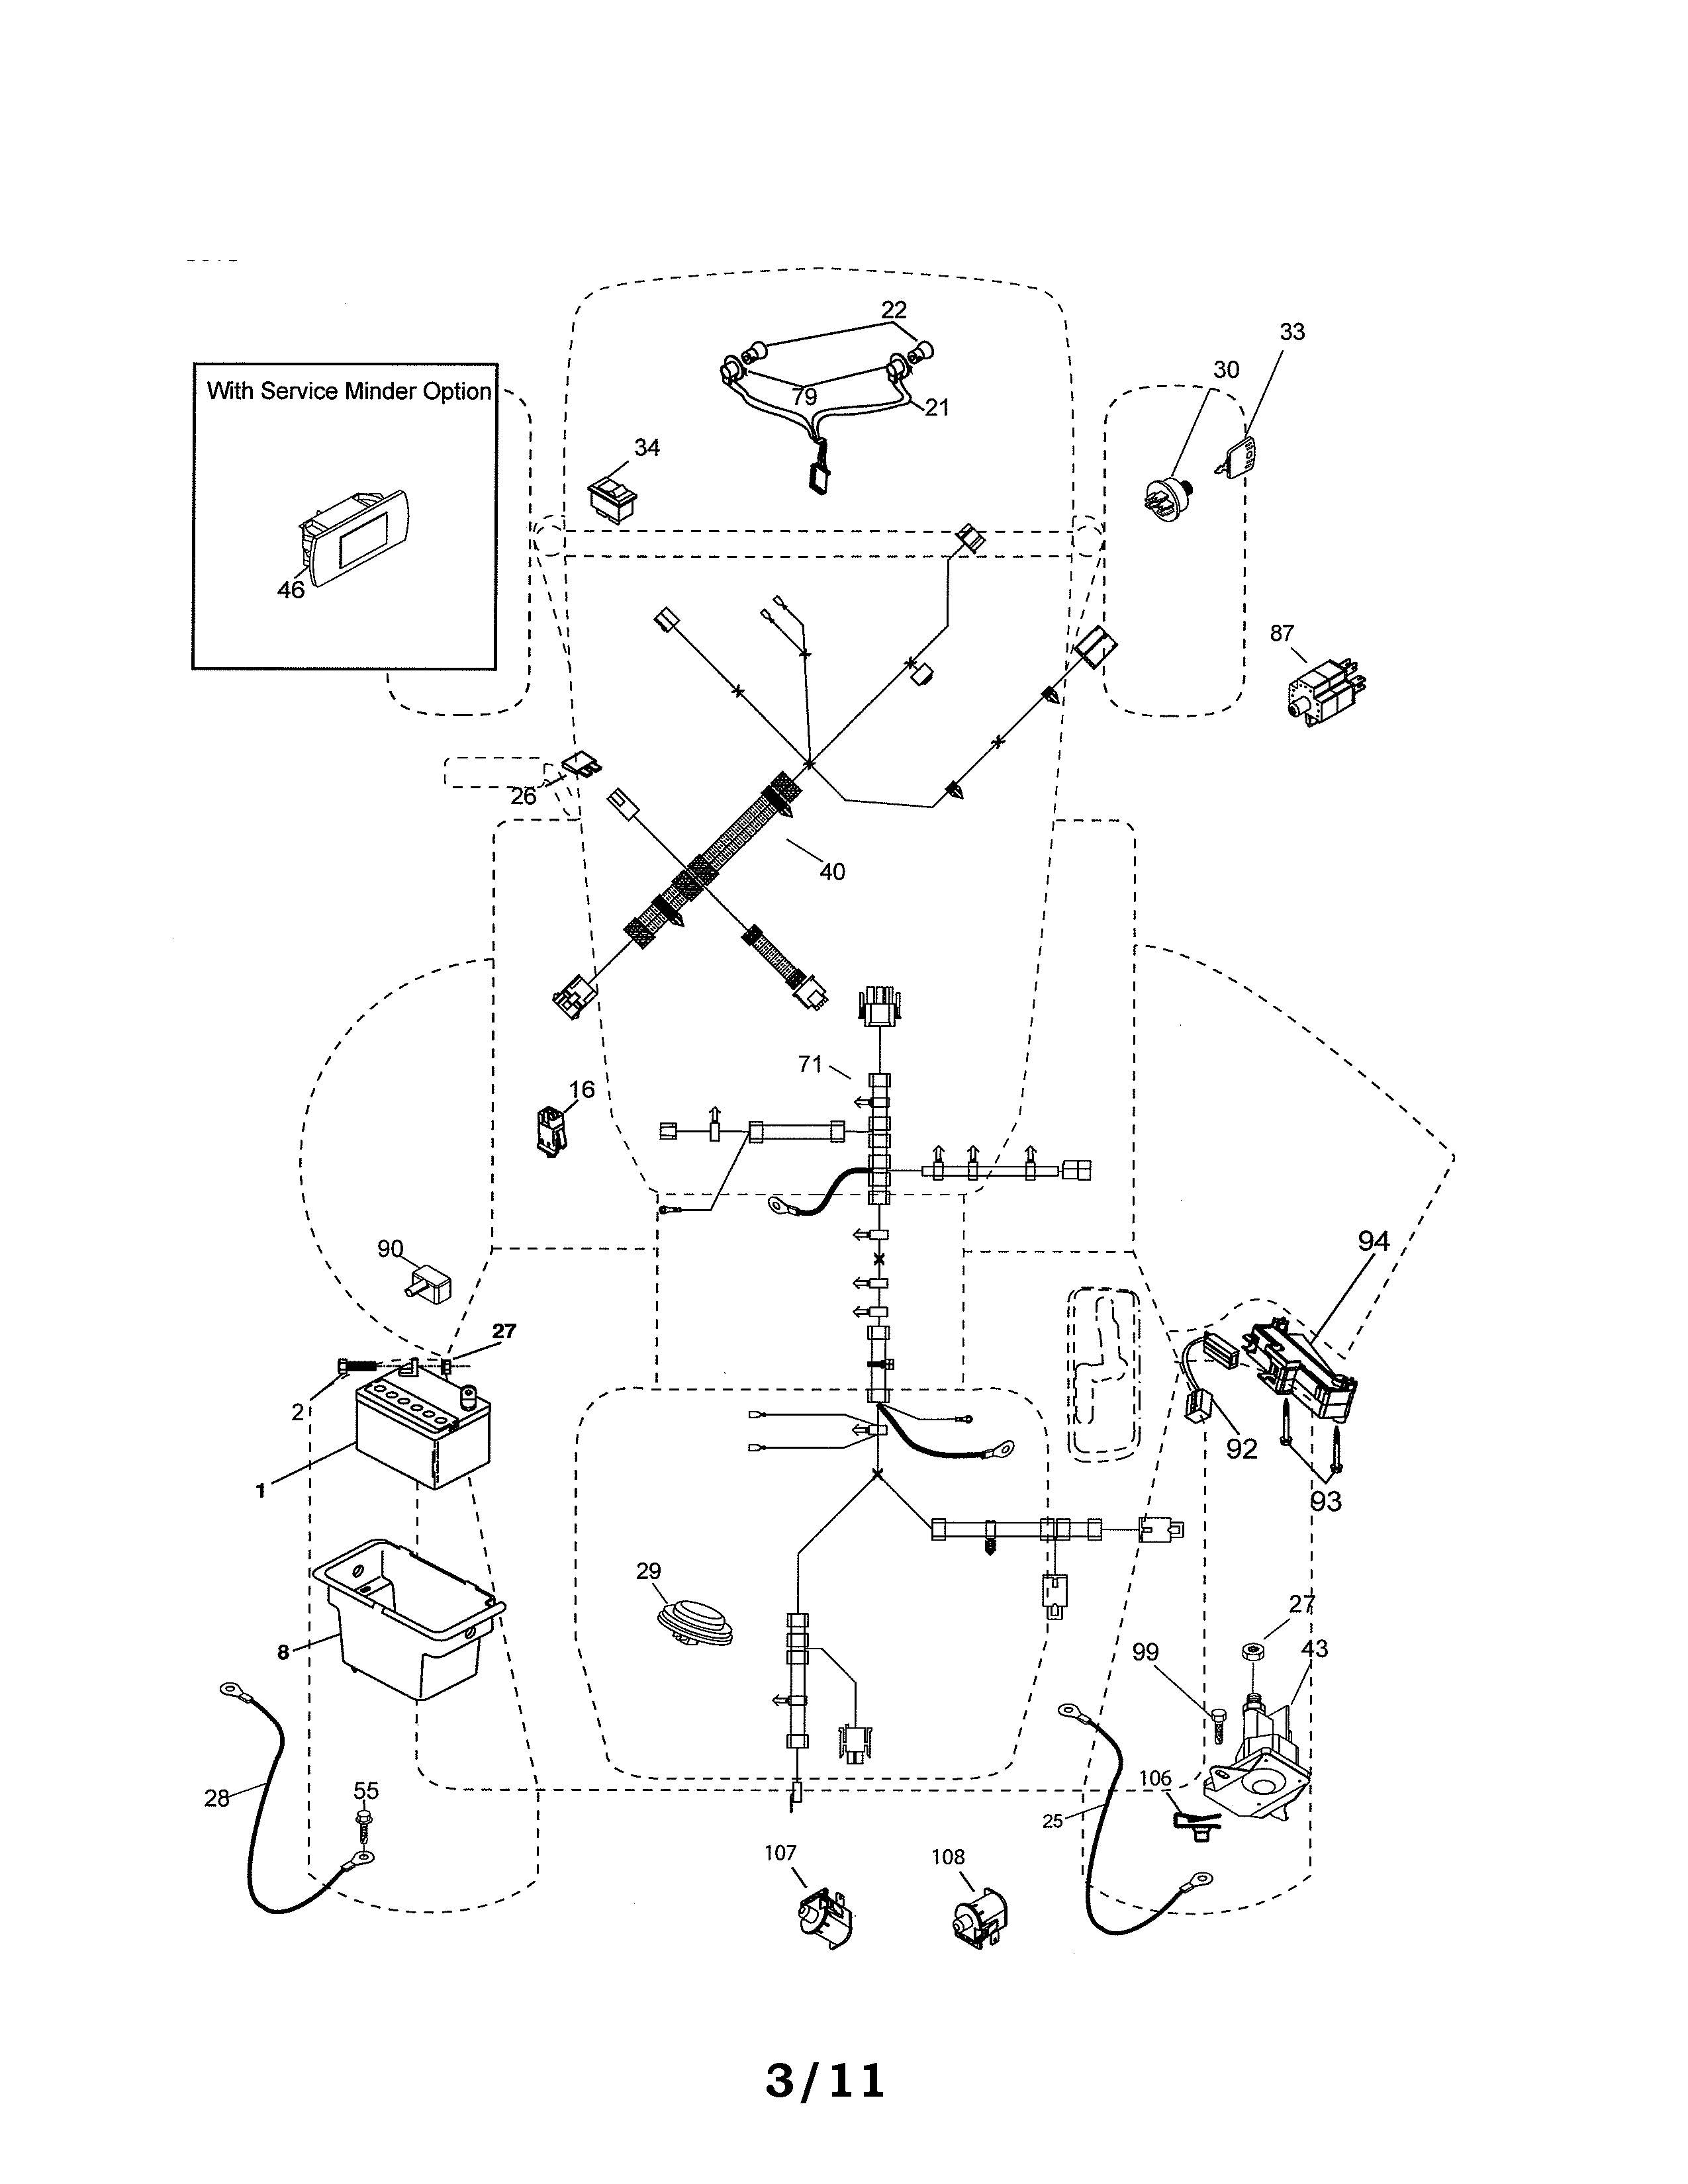 Diagram Ford Tractor Electrical Diagram Full Version Hd